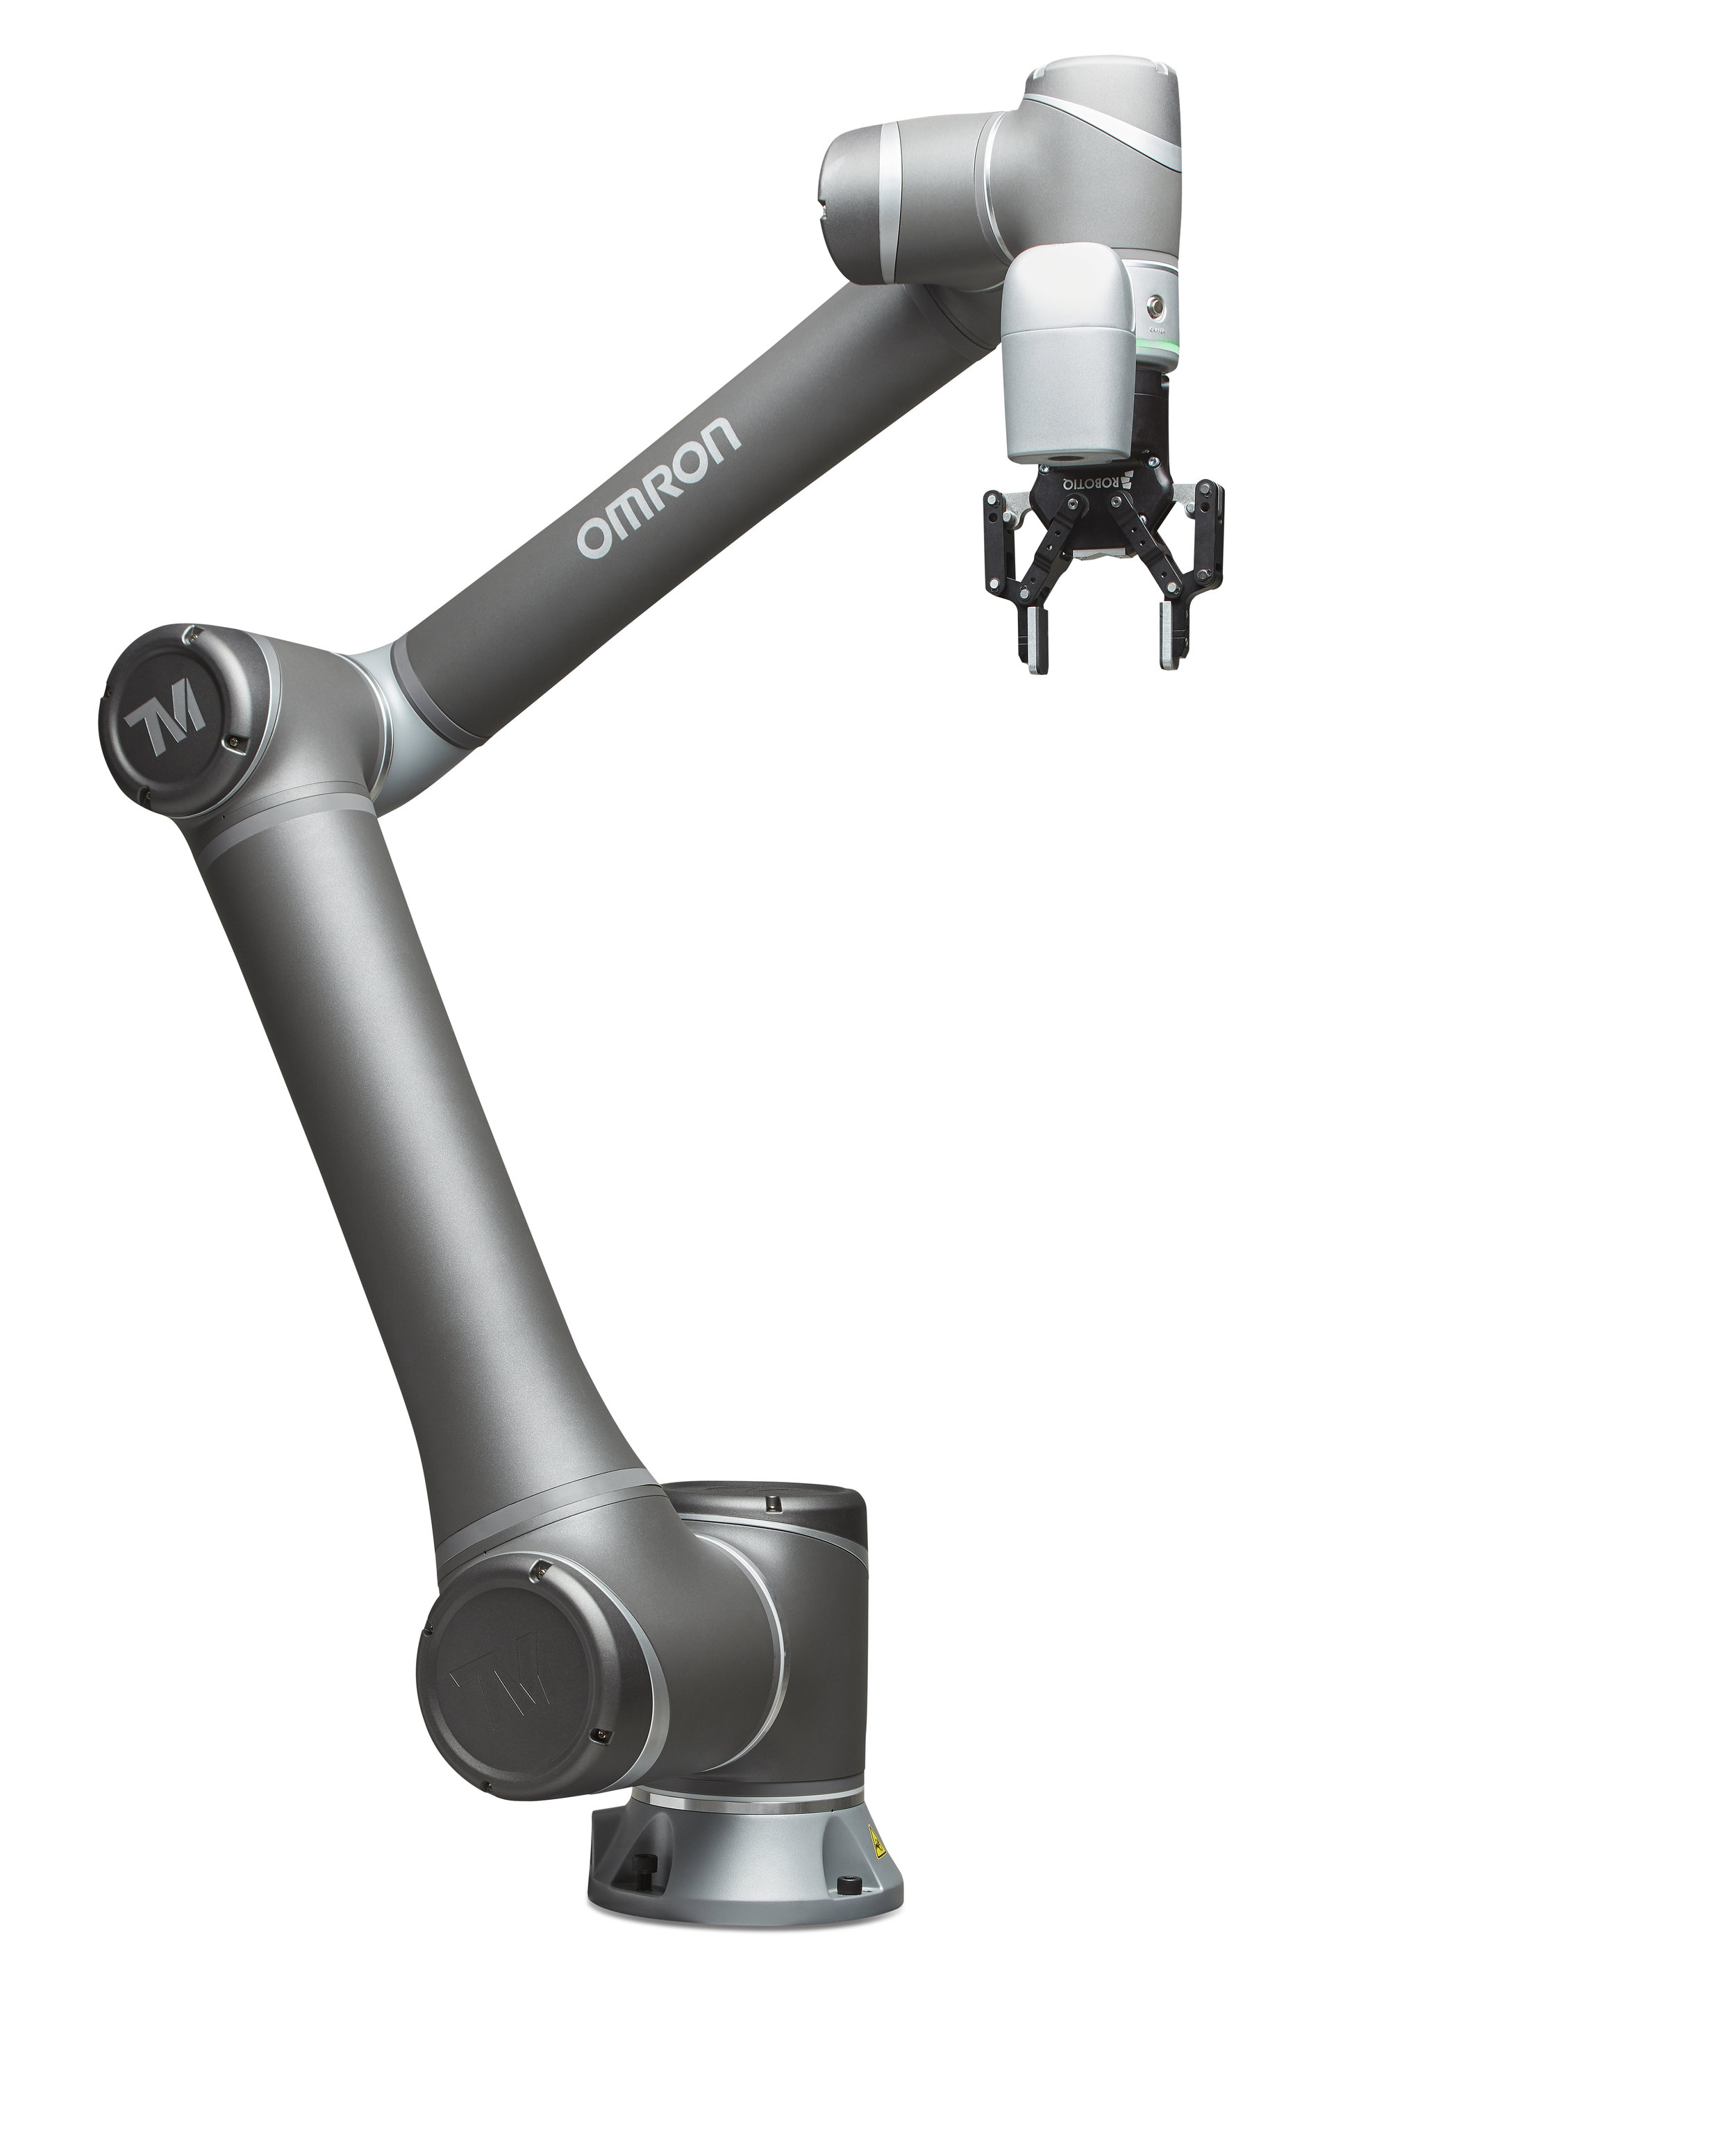 RS3004_TM5-900 robotiq gripper 1.jpg